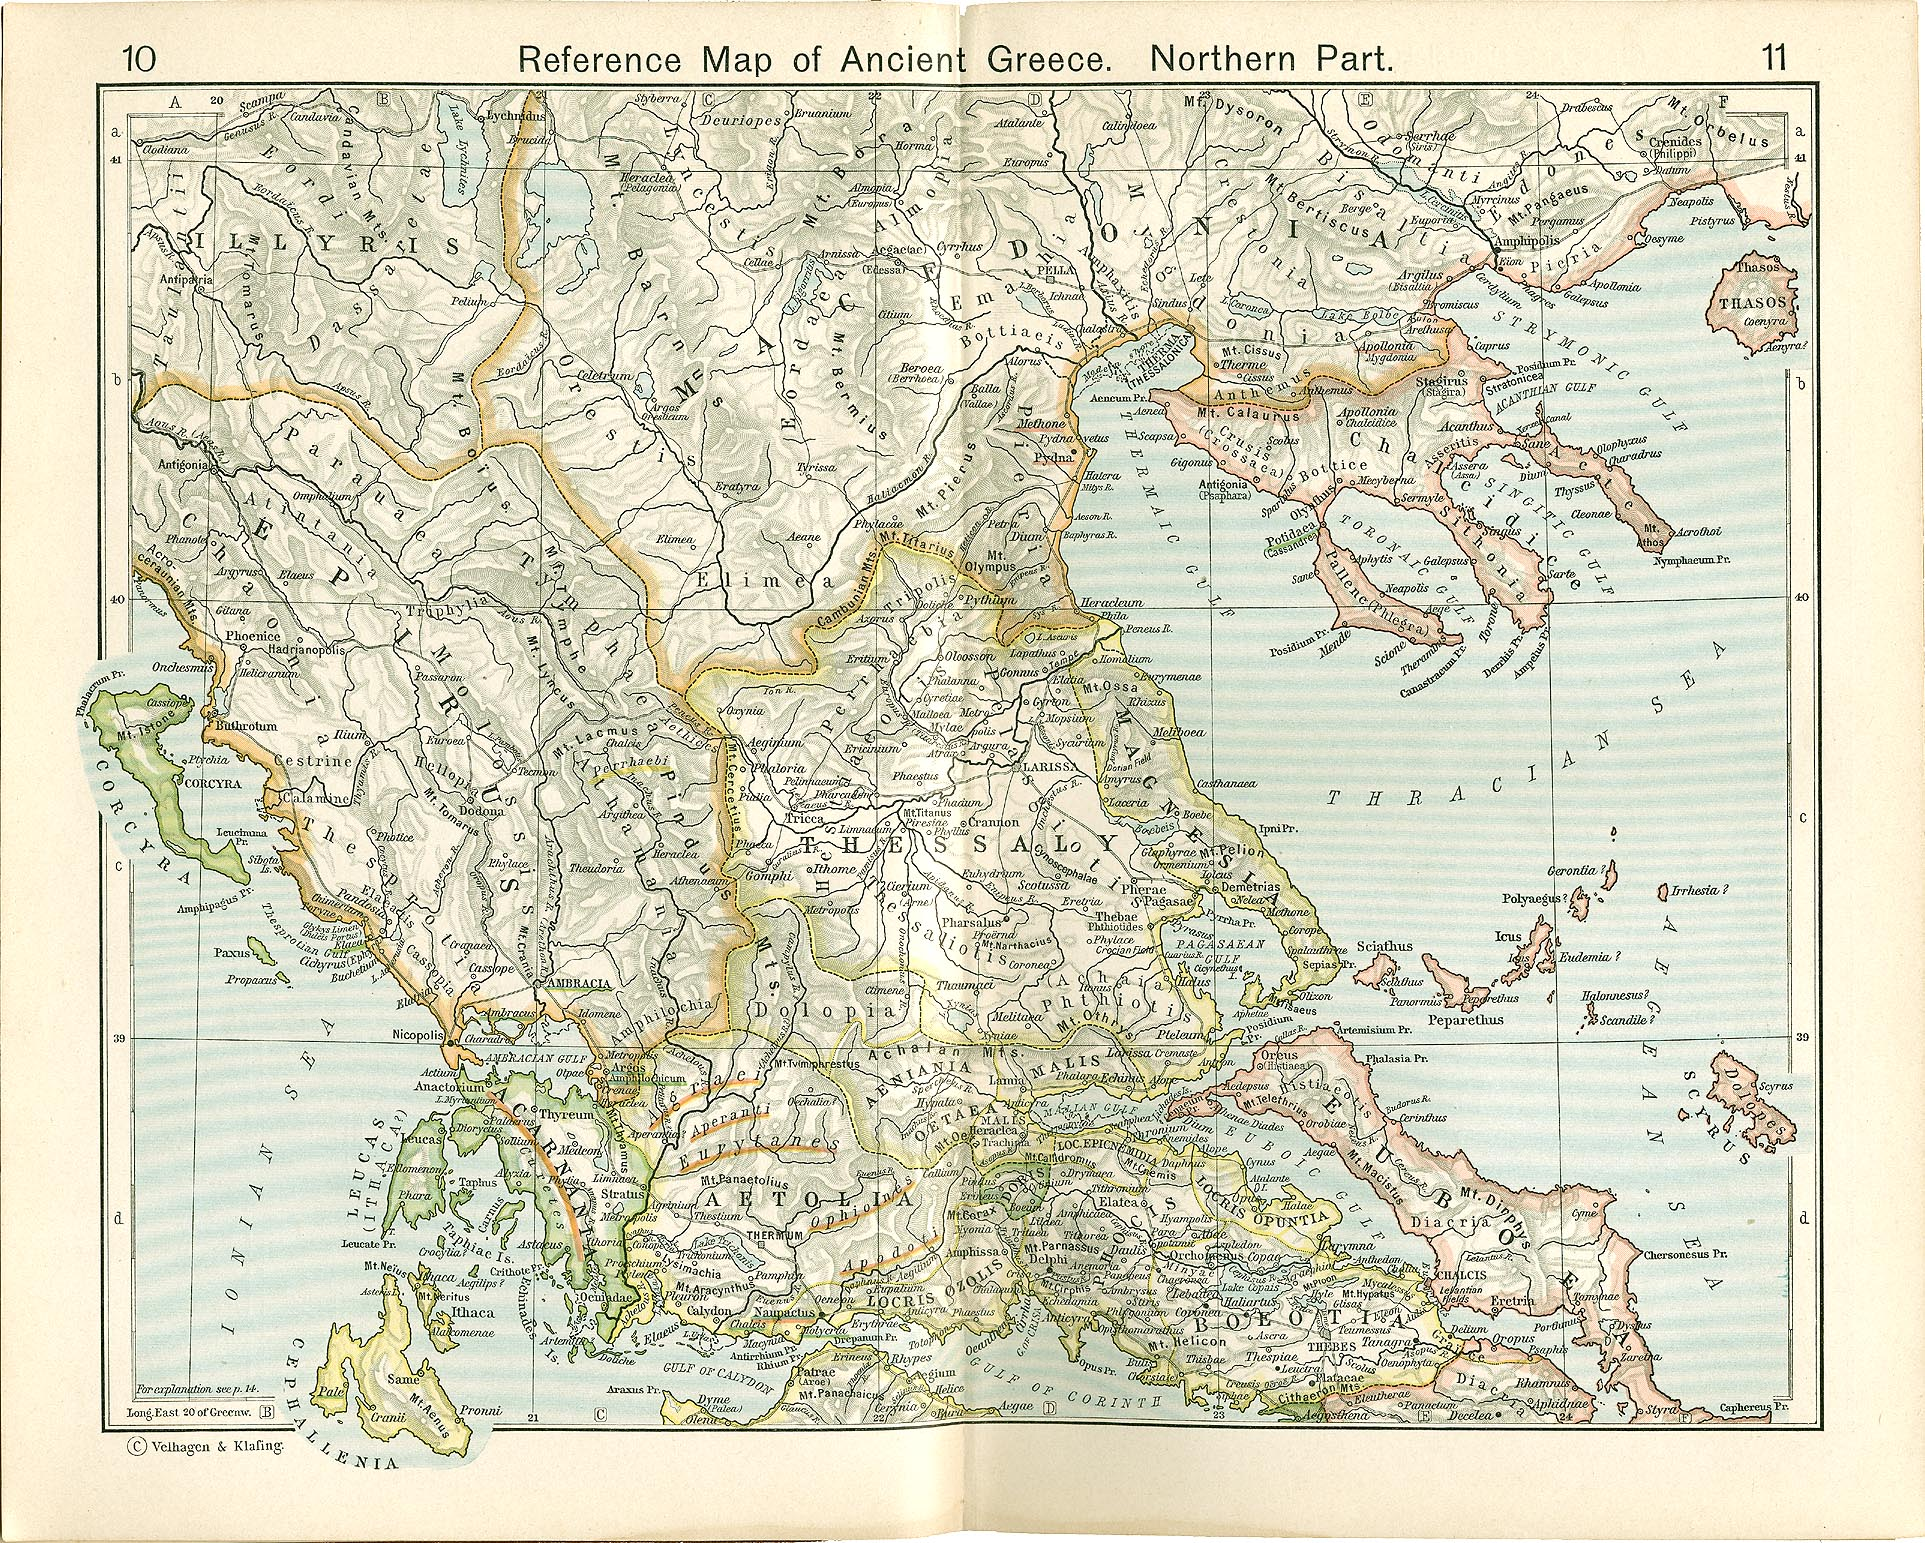 Historical Atlas by William R. Shepherd - Perry-Castañeda ... on map of eastern mediterranean, map of persian empire, crete greece, map of athens, olympic games in greece, delphi greece, map of persia, map of greece and surrounding areas, map of mediterranean sea, peloponnese greece, map of greece today, map of troy, map of roman empire, ithica greece, map of corinth greece, map of balkan peninsula, map of mesopotamia, map of modern greece, epirus greece, parthenon greece,